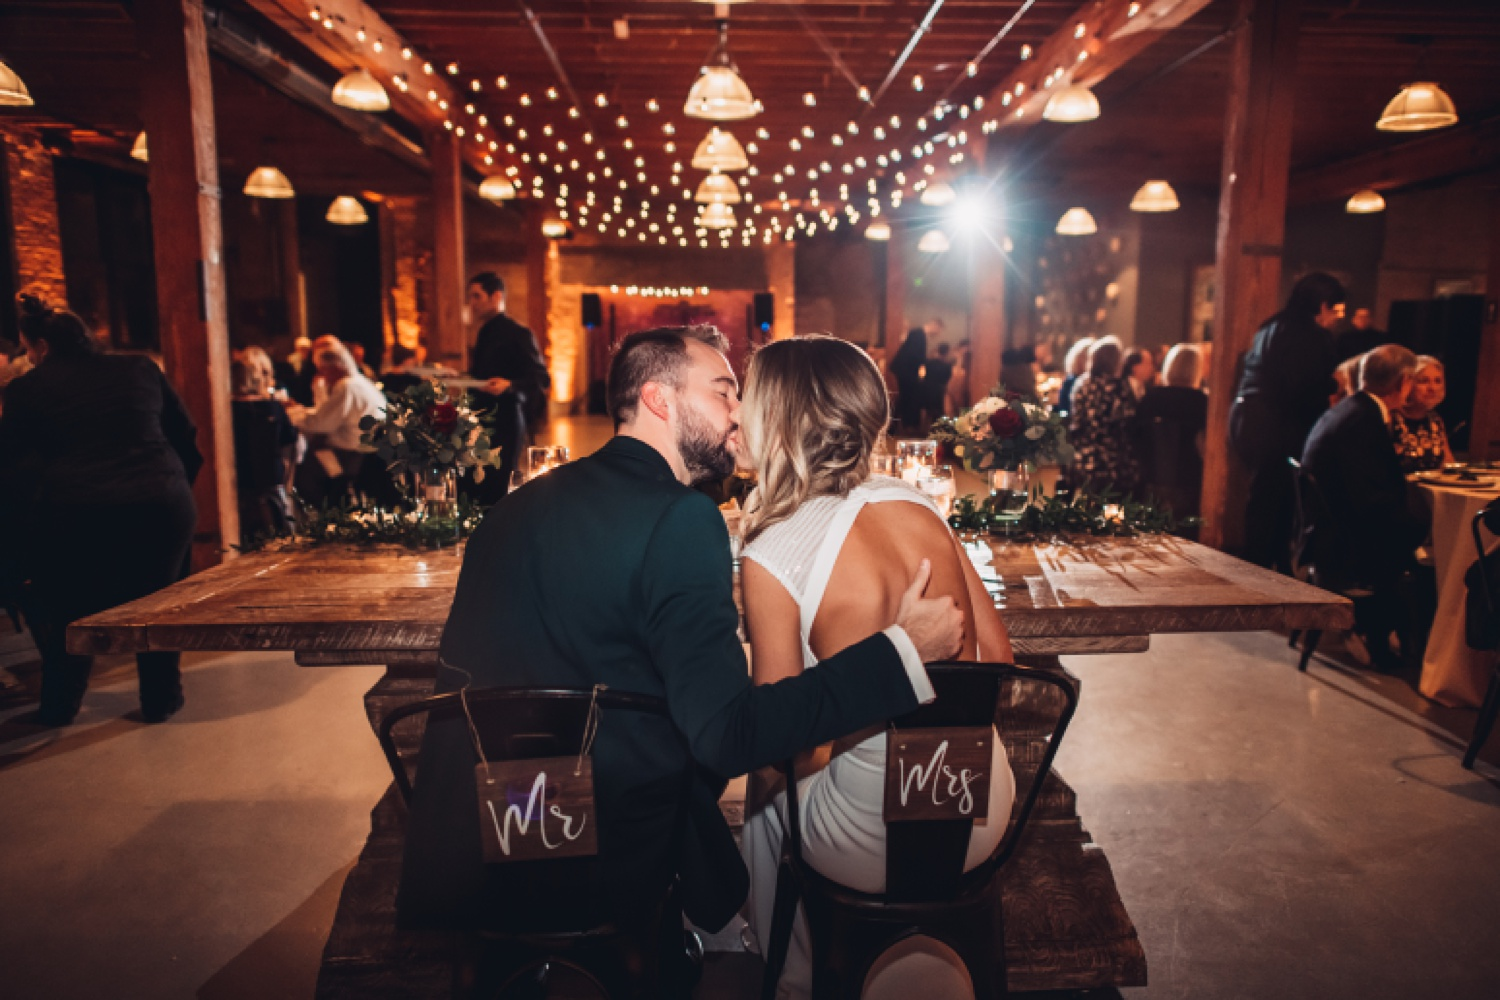 Artifact Events Chicago Wedding - The Adamkovi kiss